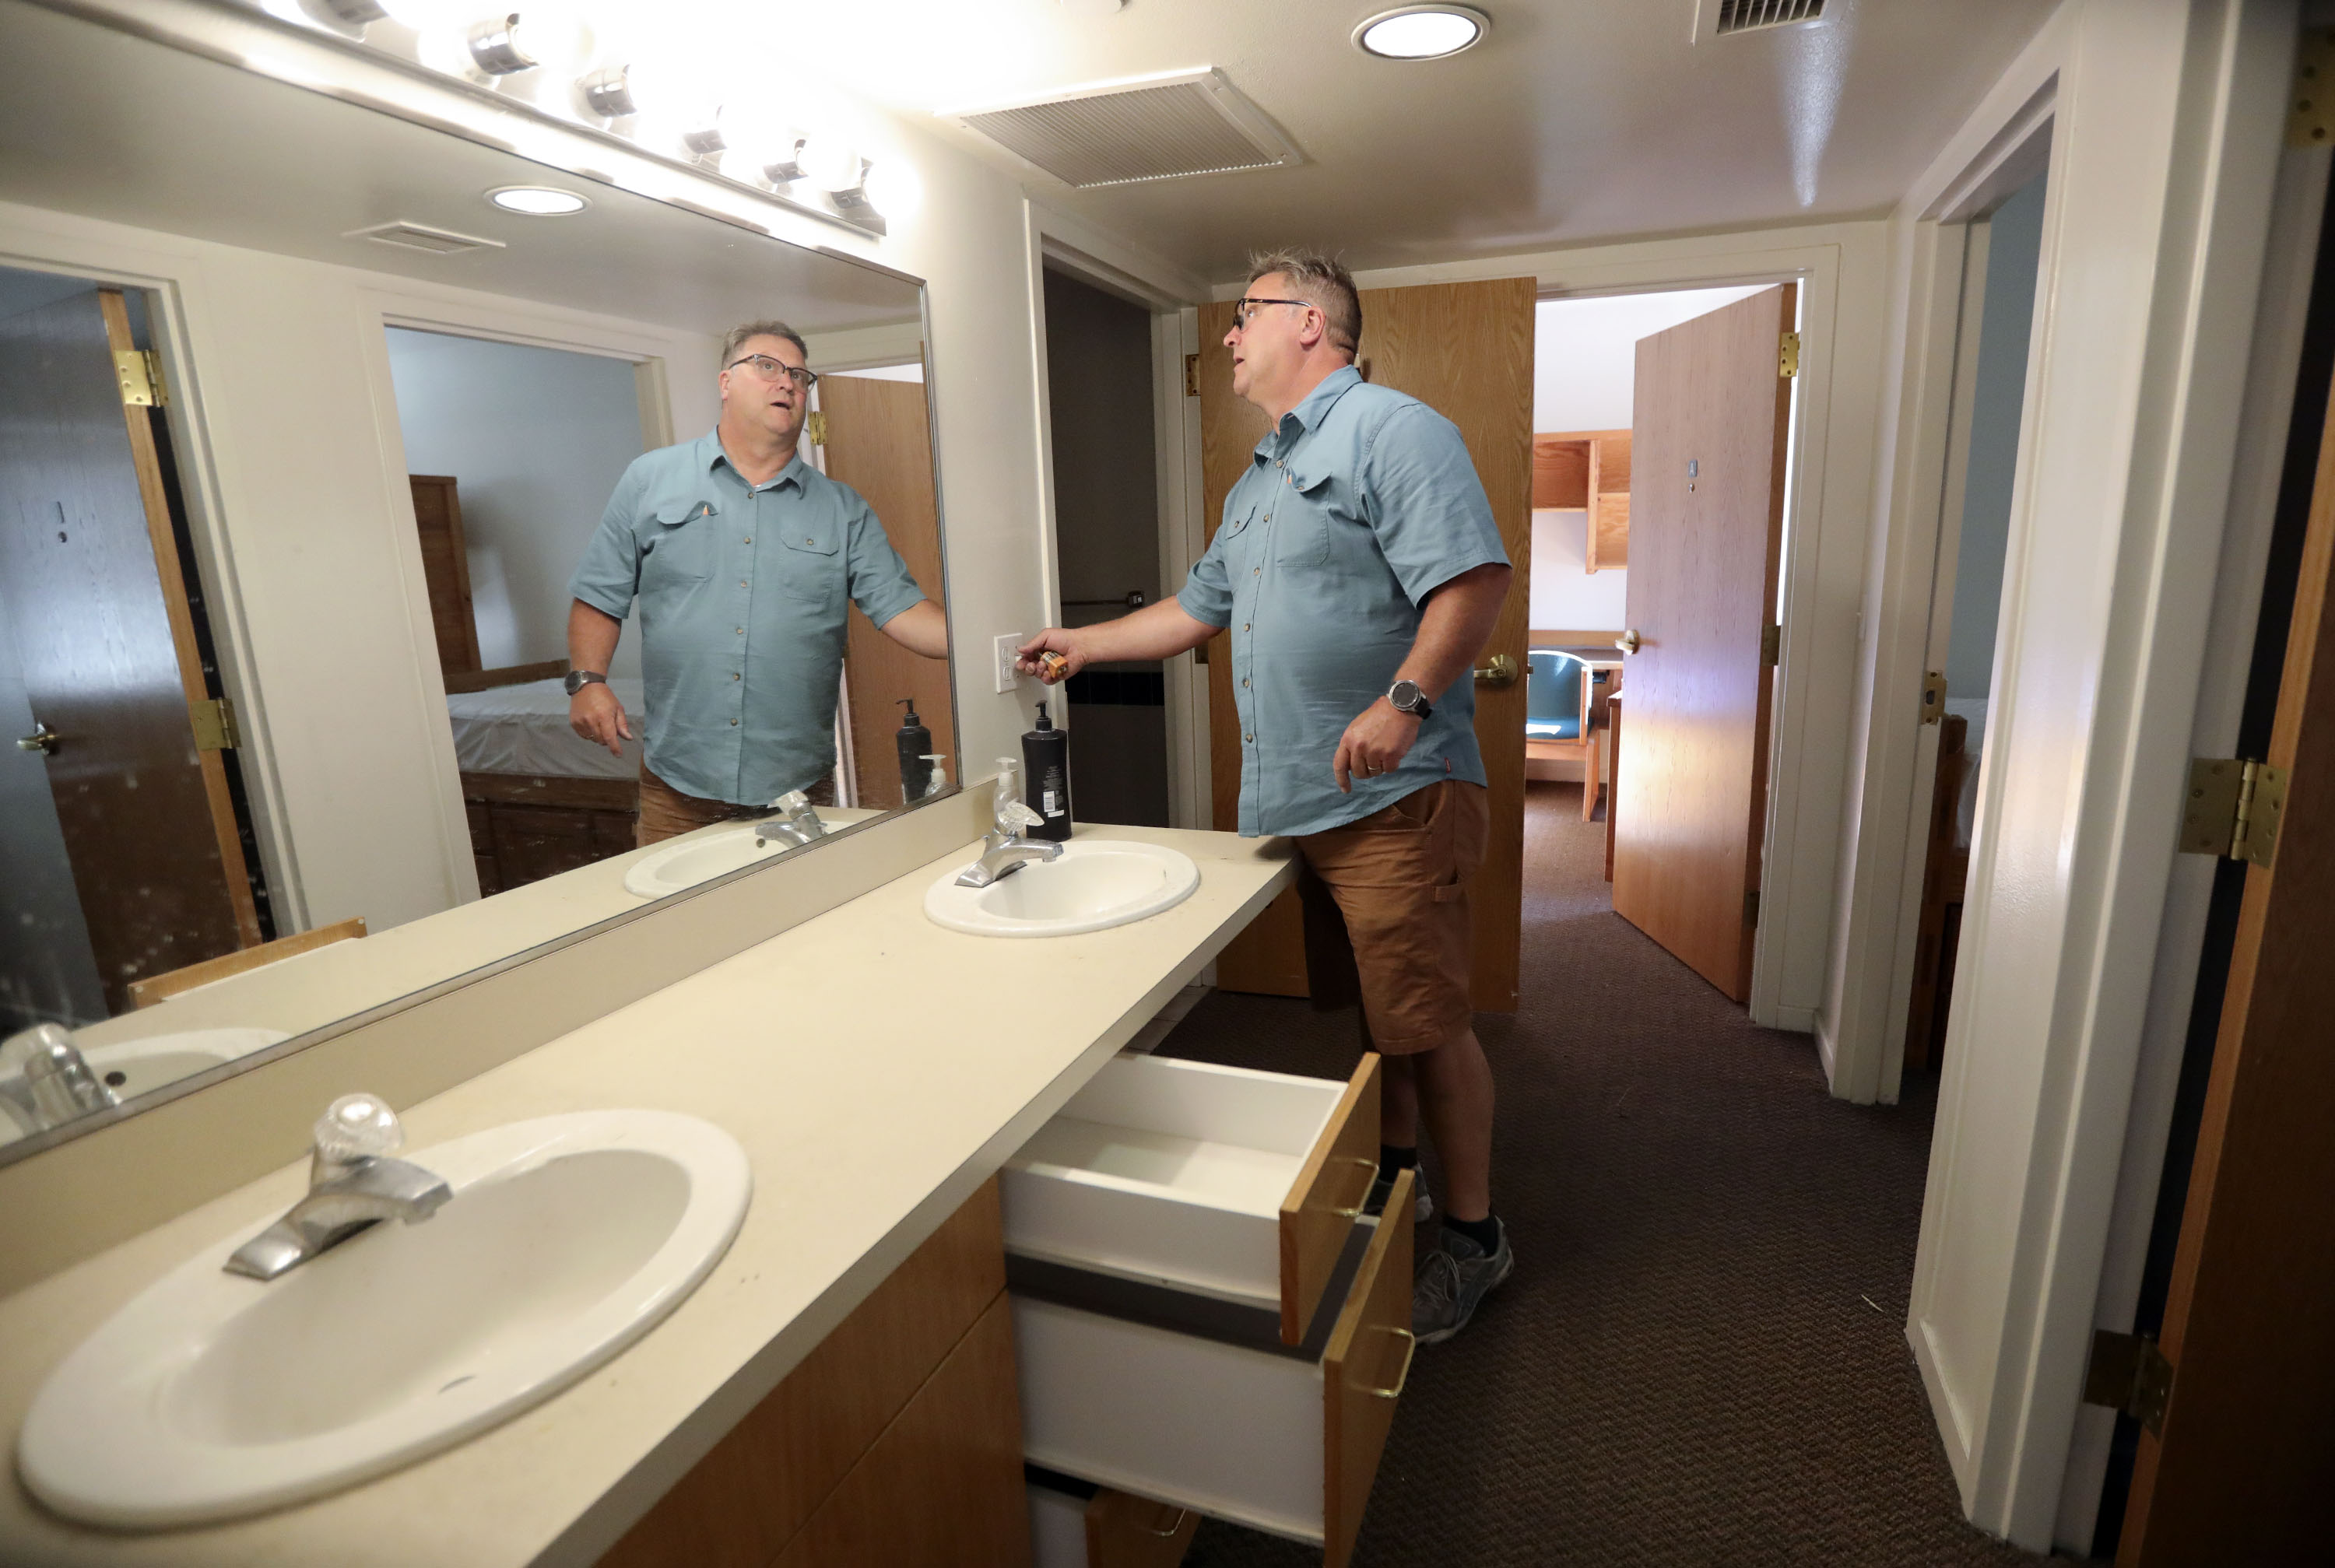 Mark Vittum, Westminster College maintenance technician, checks lightbulbs and power outlets in an Olwell Hall dorm at Westminster College in Salt Lake City on Tuesday, June 22, 2021.